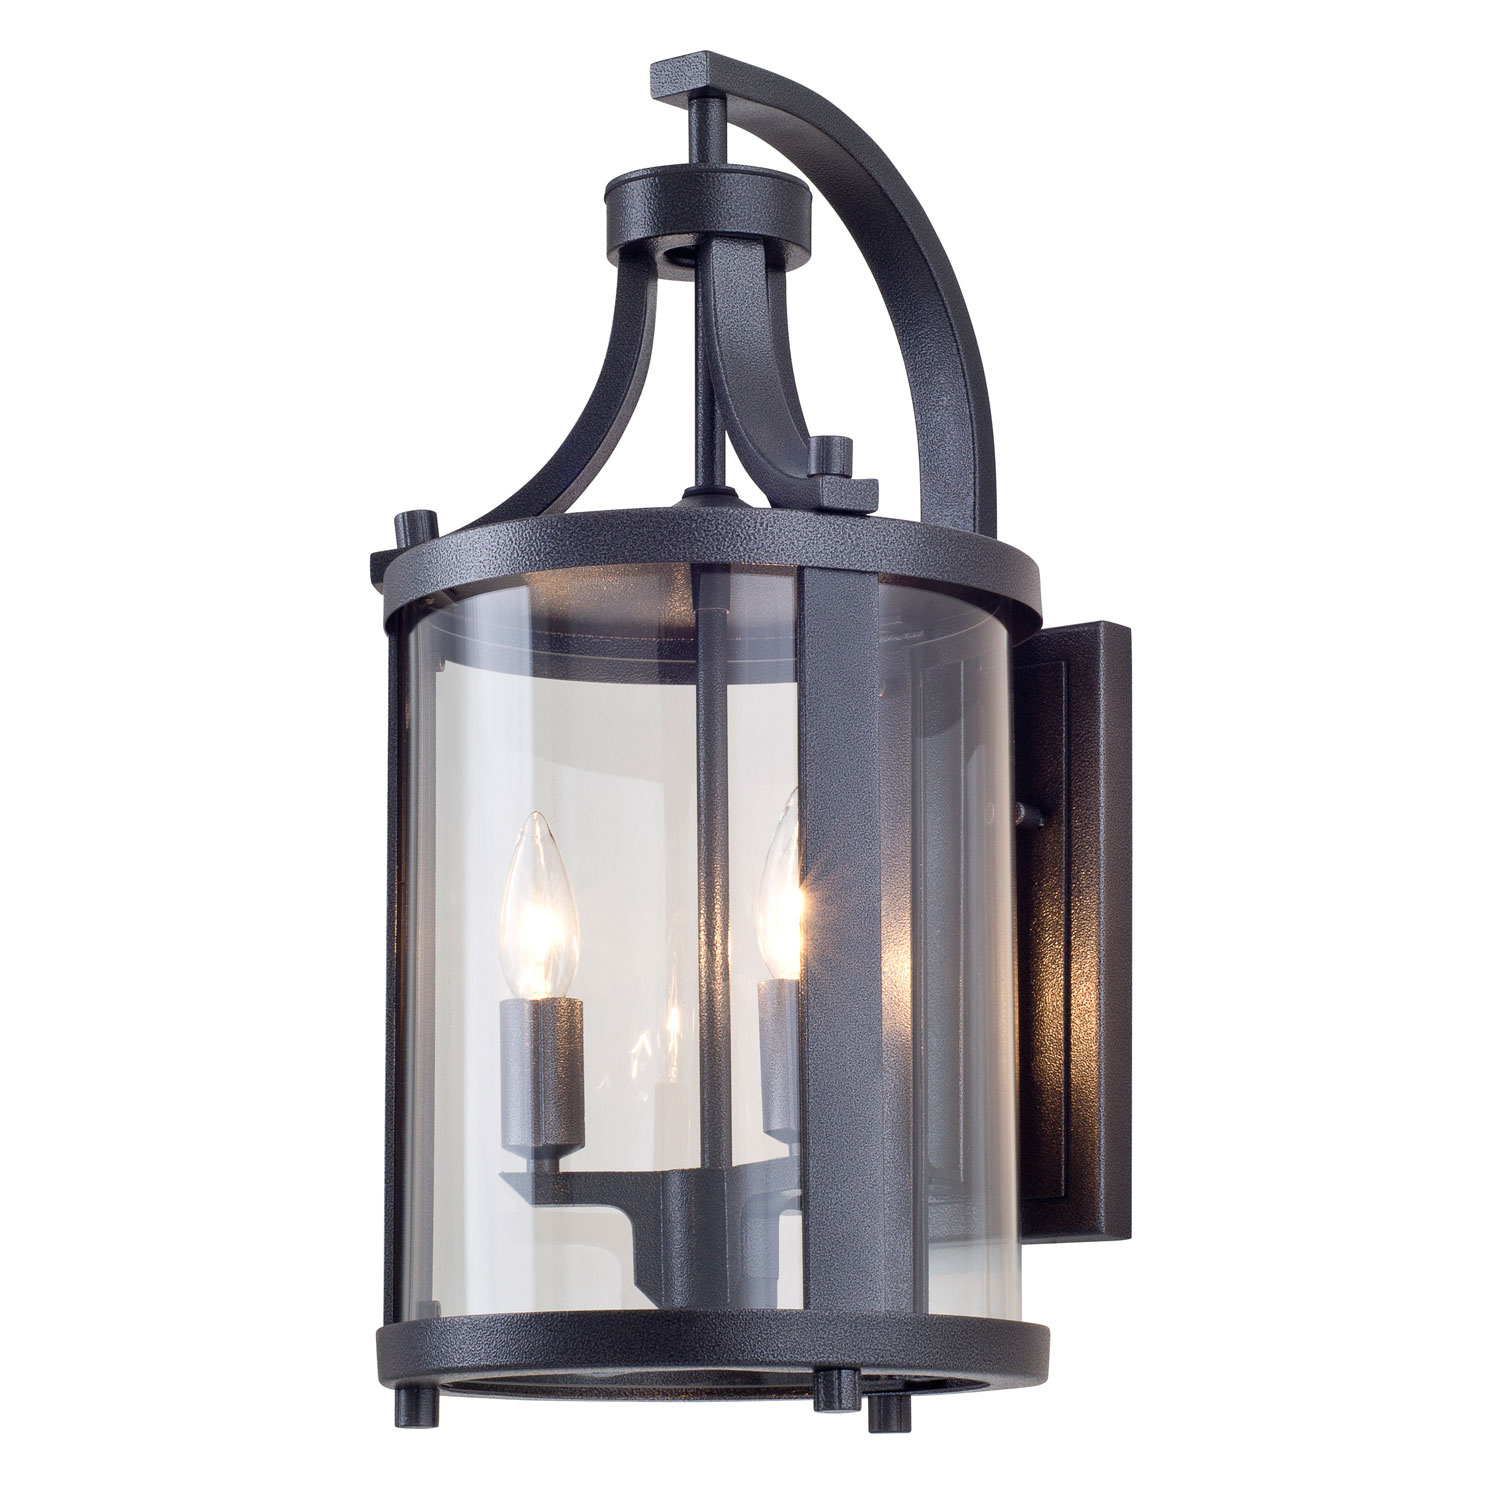 Wall Bracket Light Fittings : 10 facts about Outdoor wall mount light fixtures Warisan Lighting